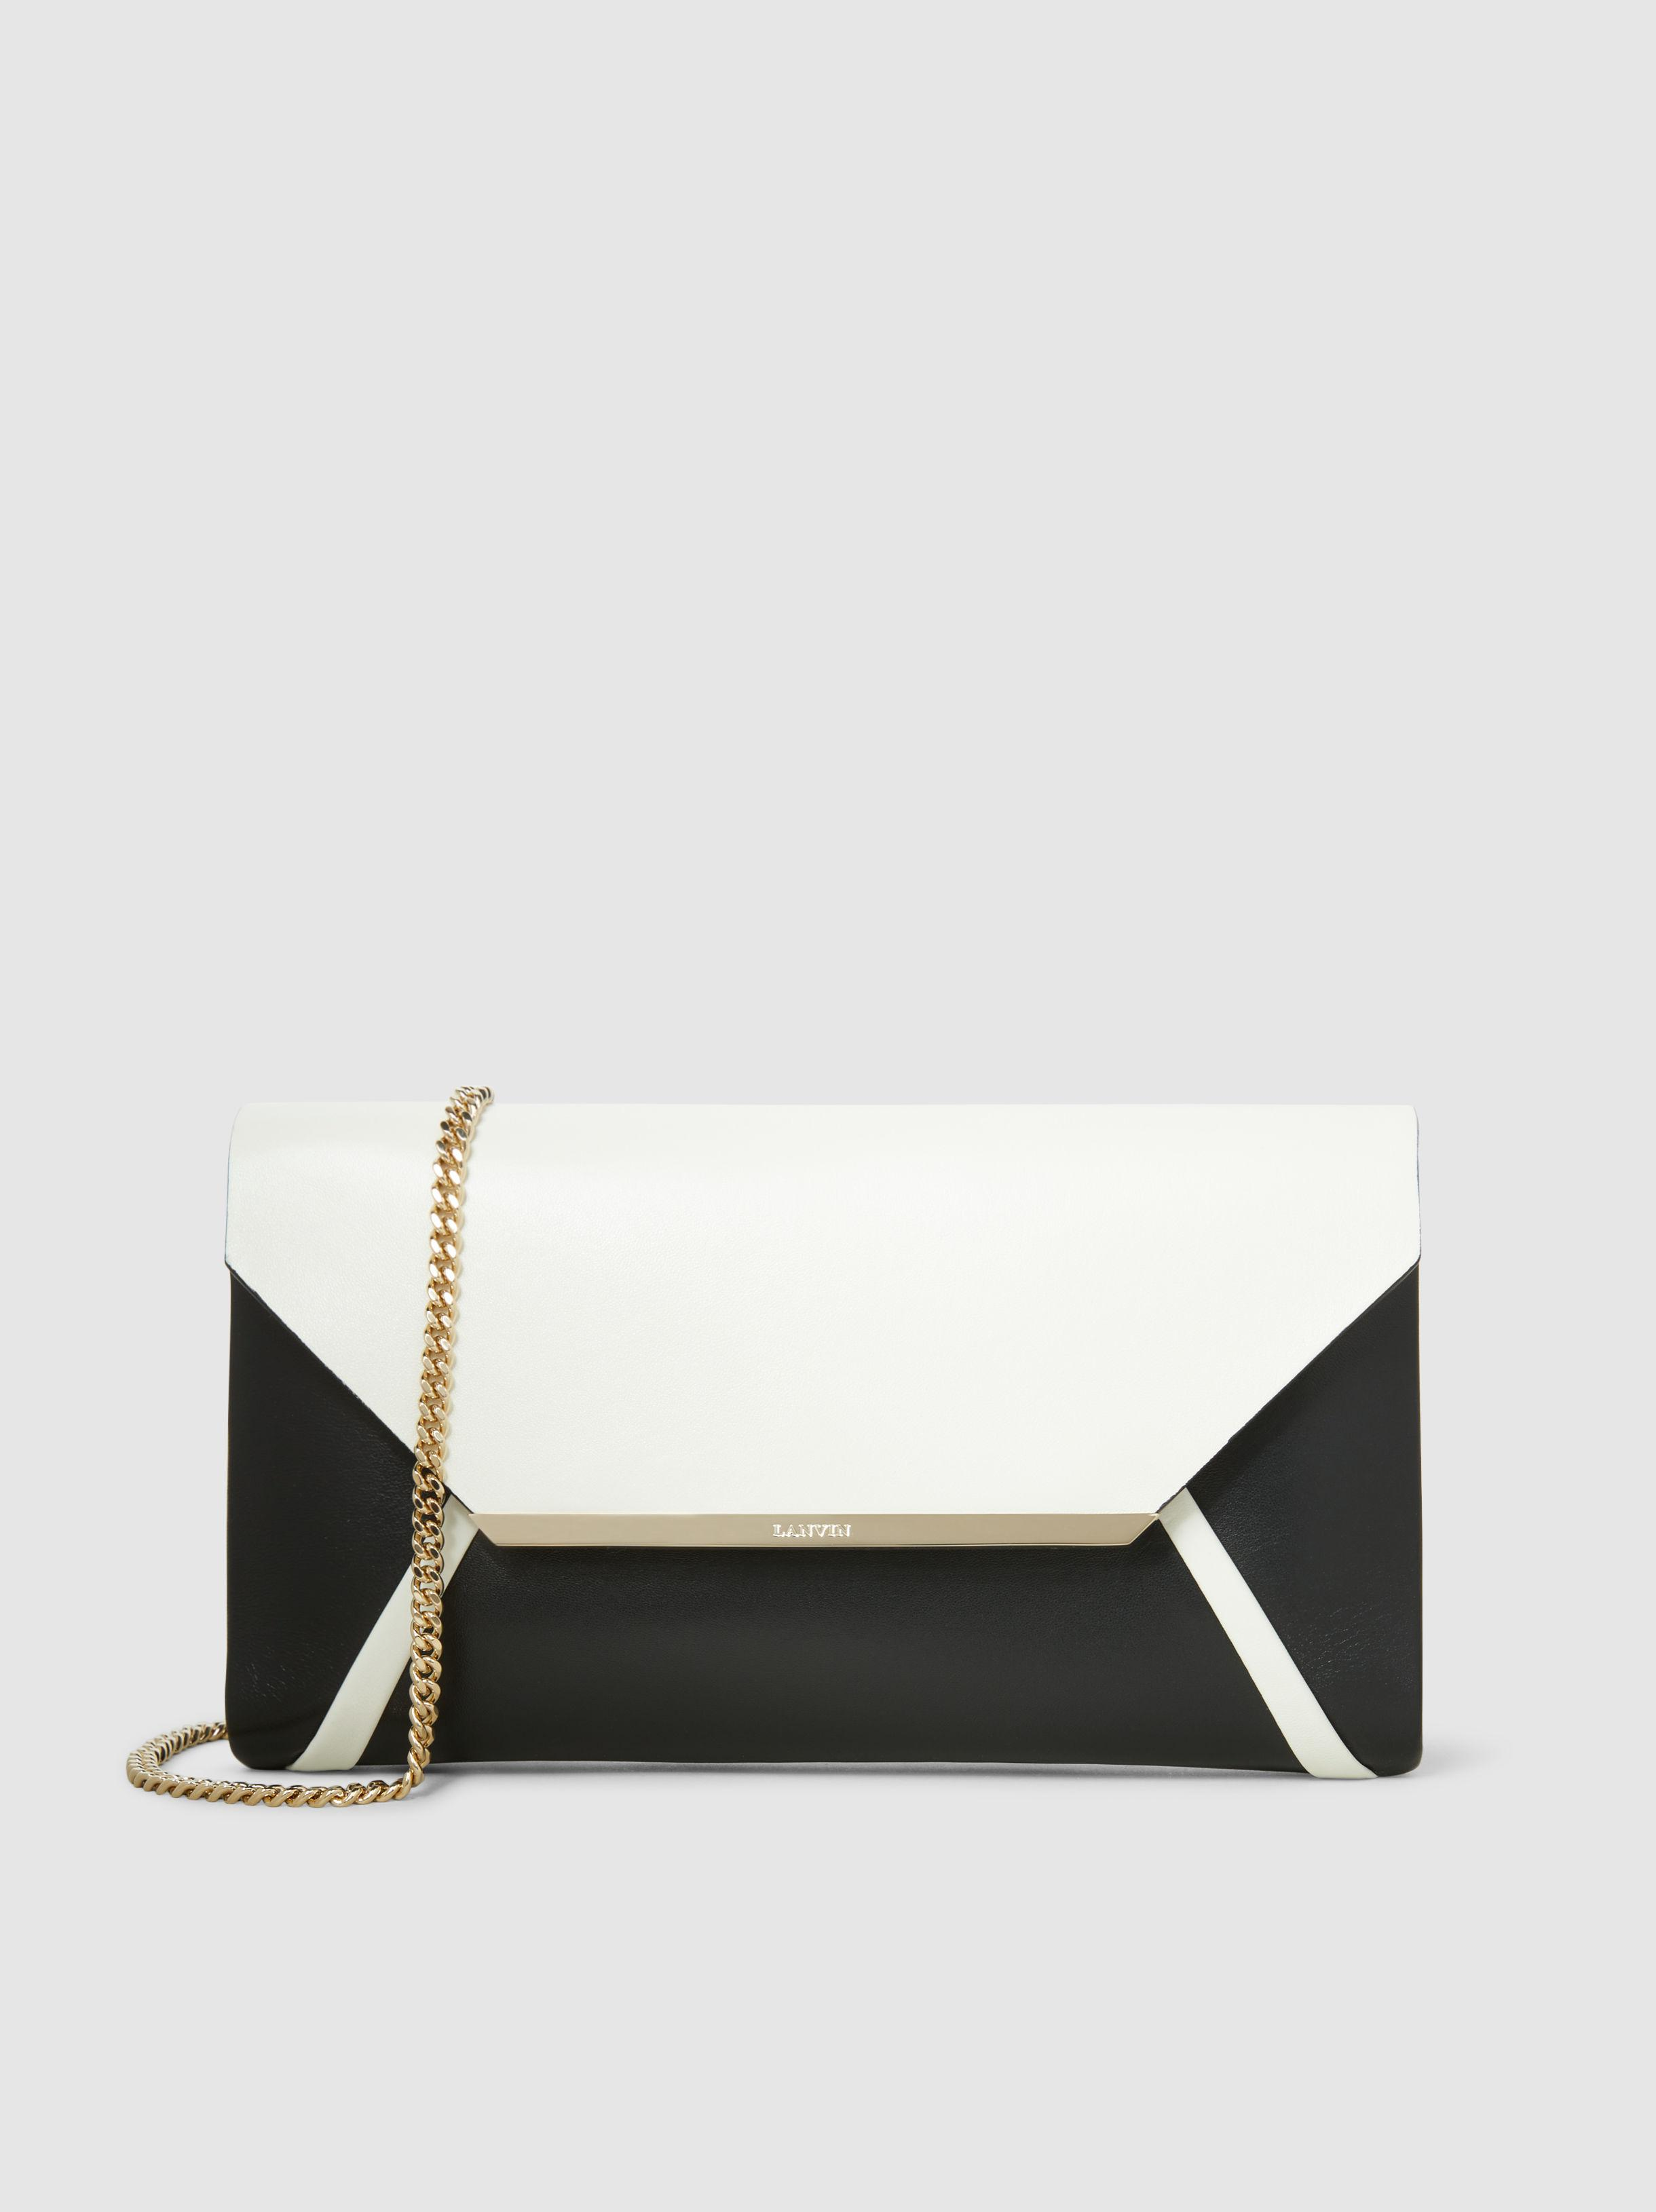 Two-Tone Leather Clutch Lanvin 0yp3Fzn7zi